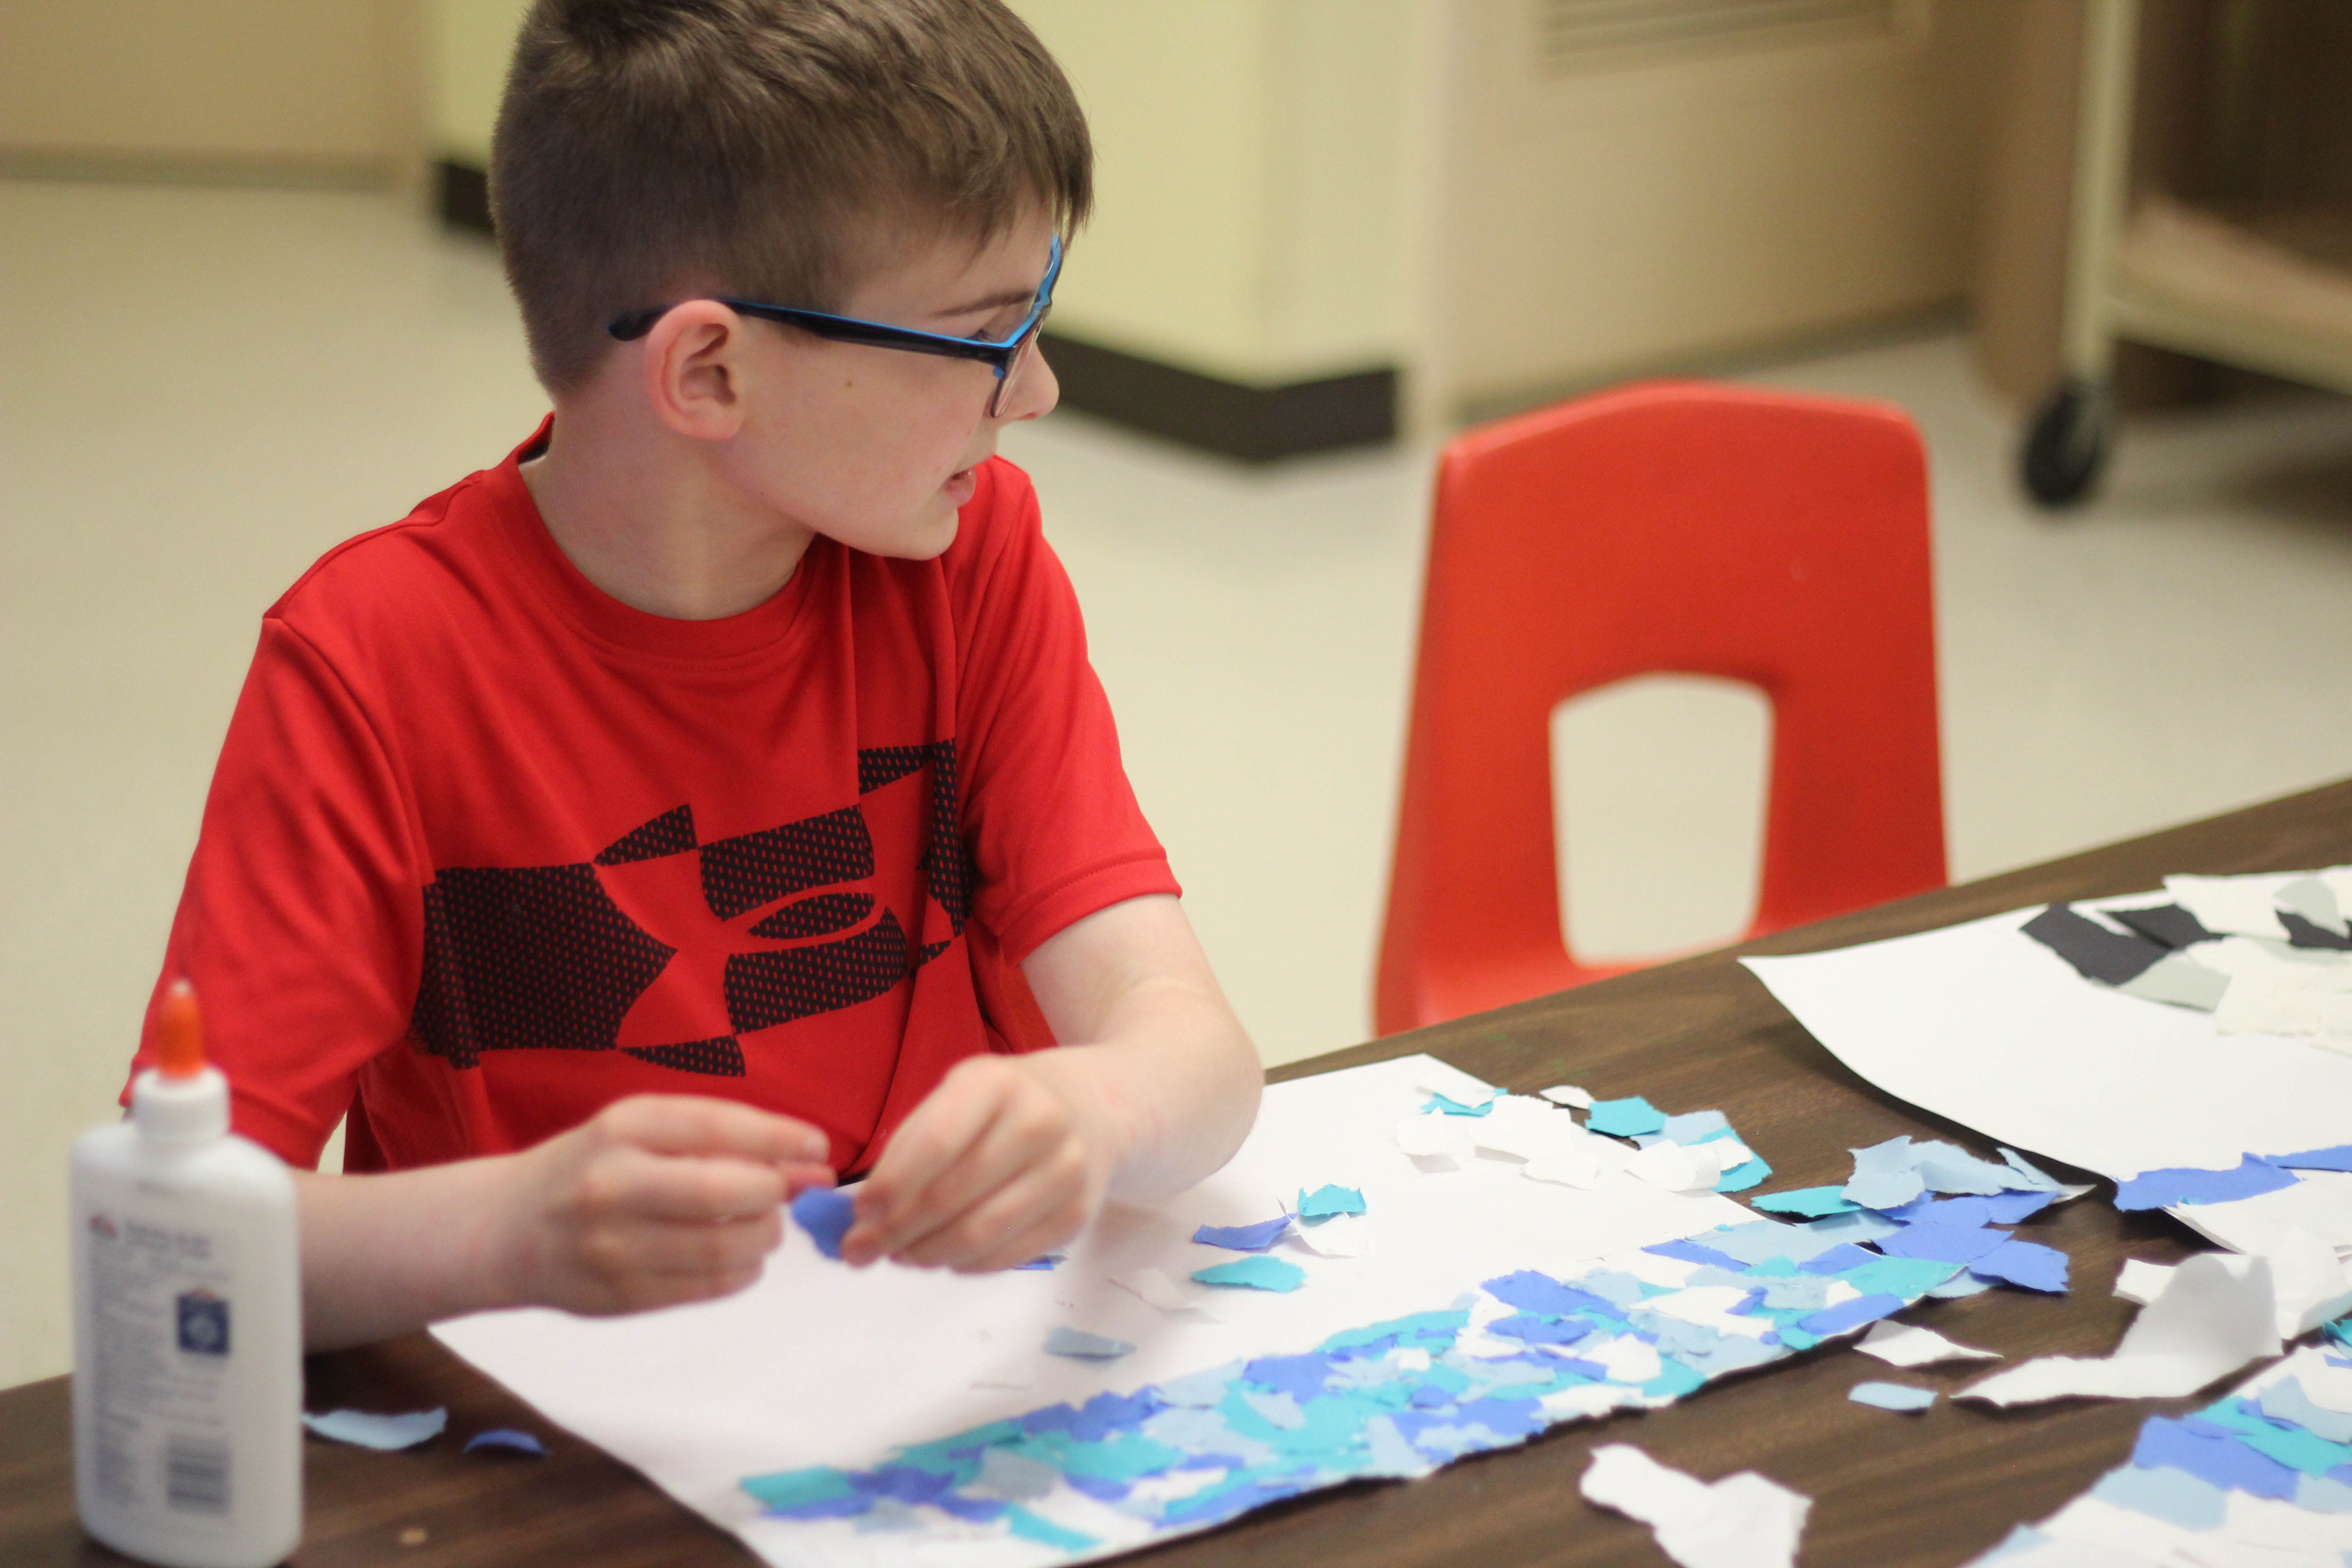 A student works on their art project.